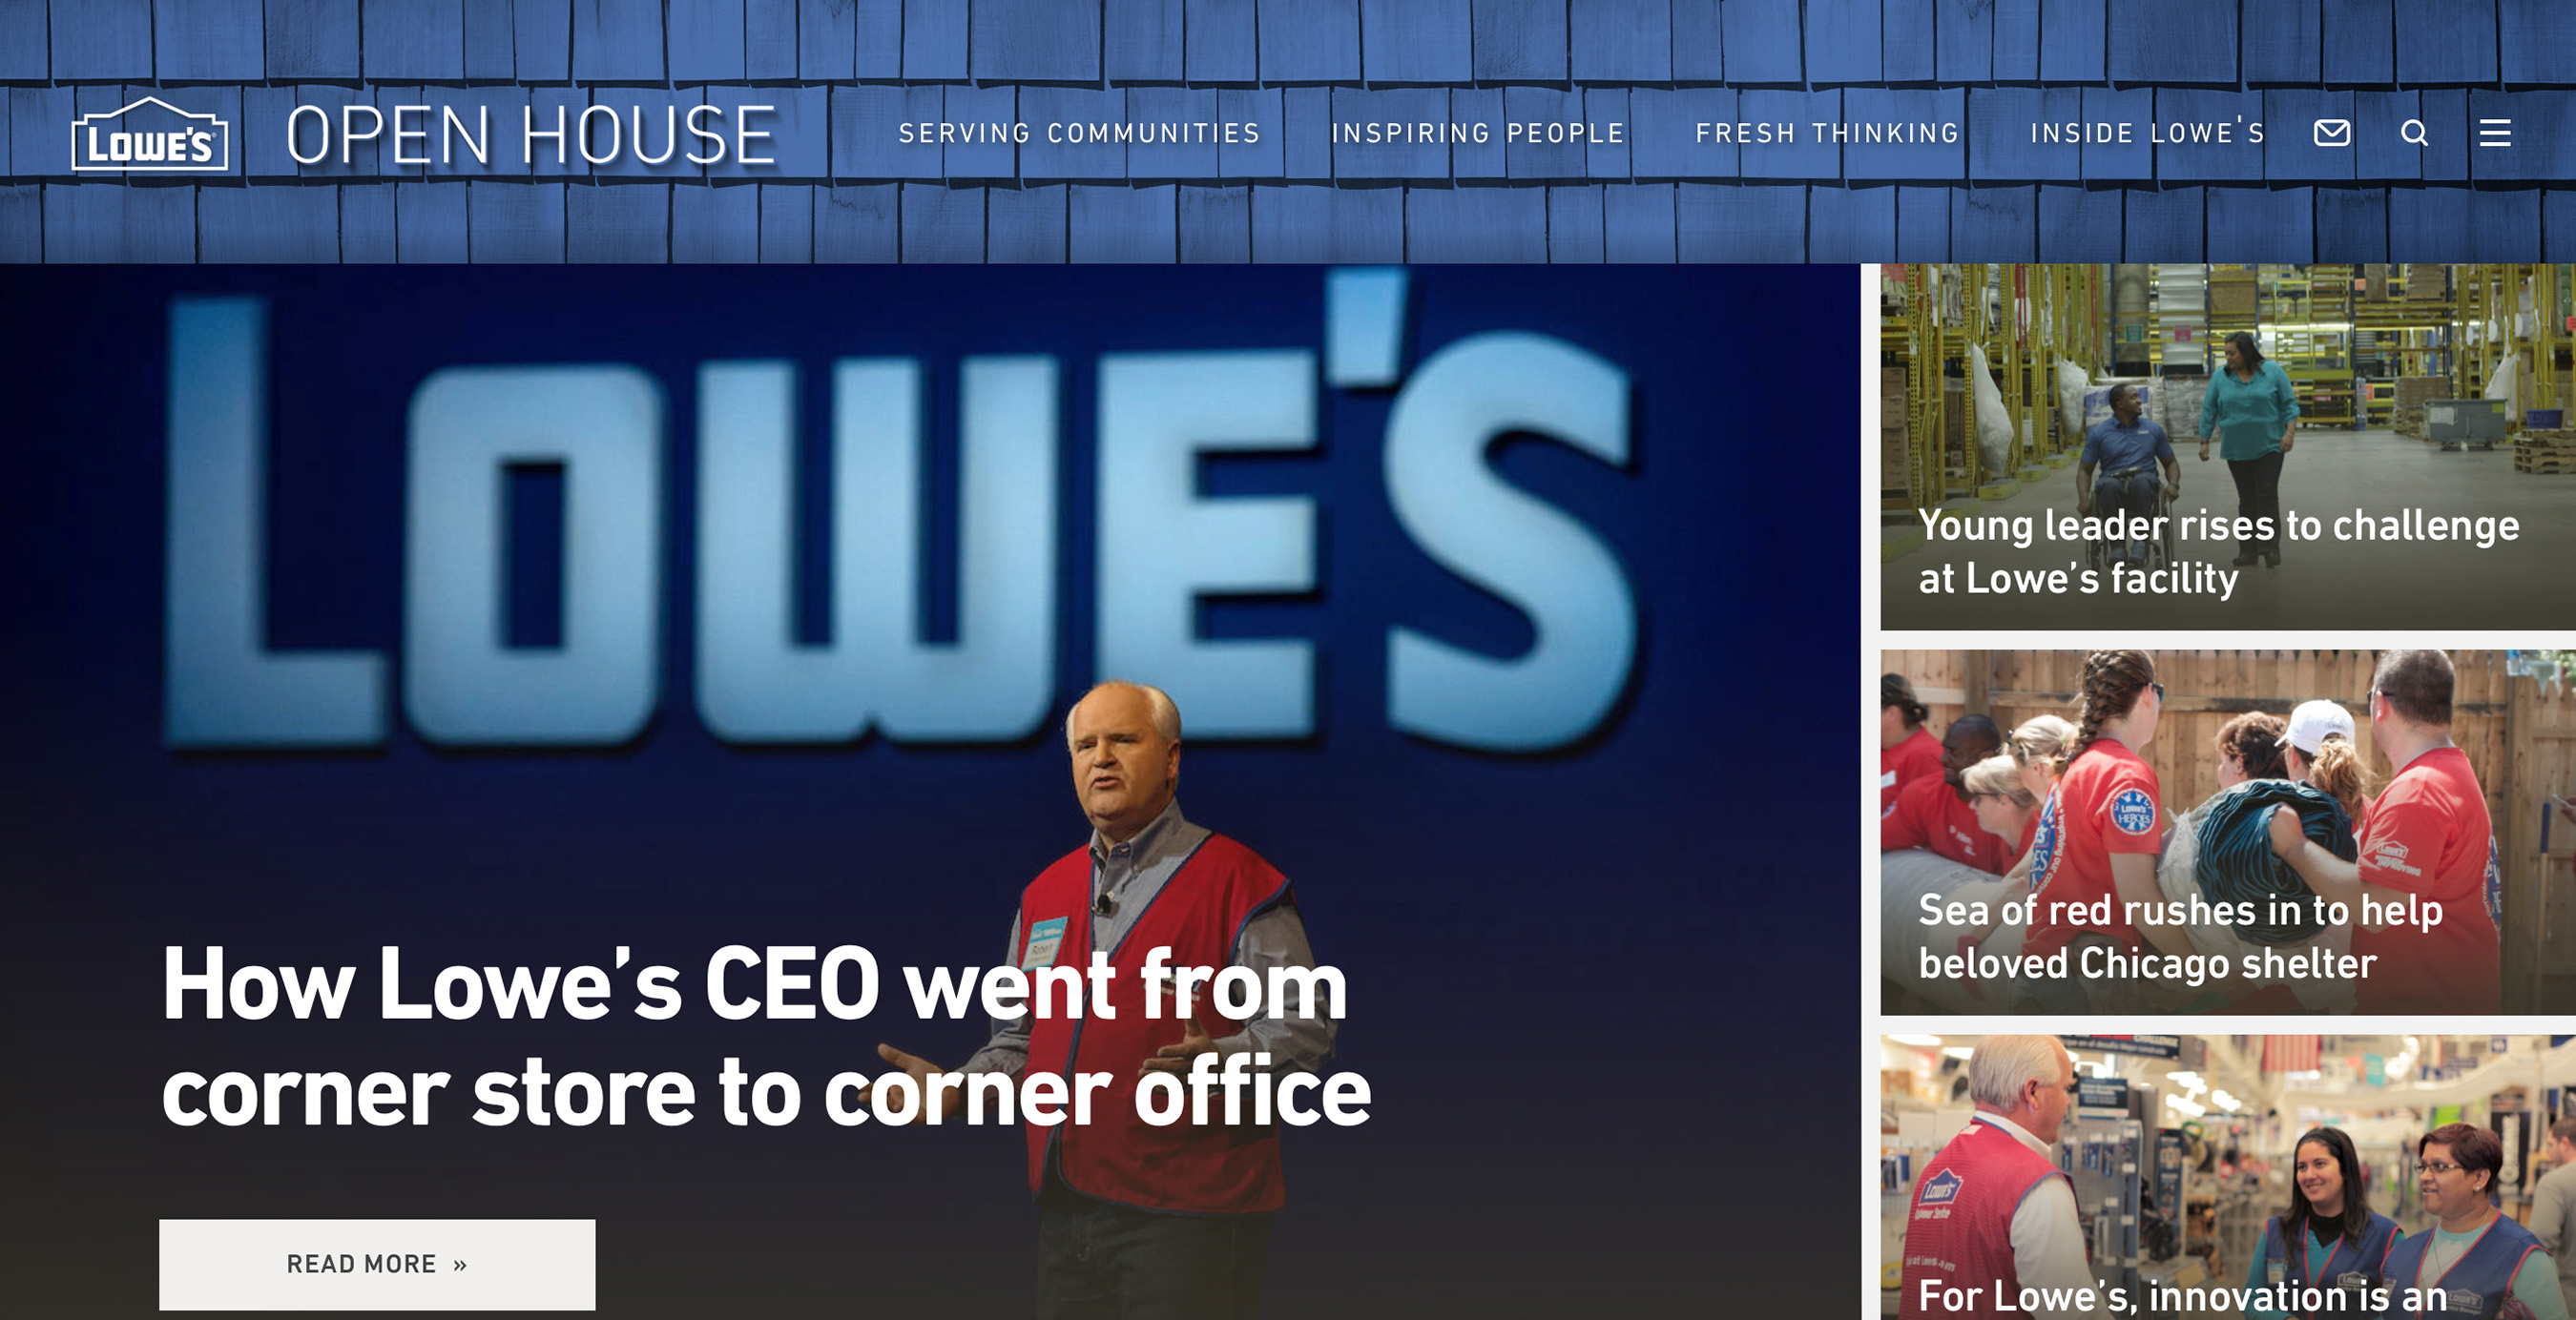 Lowe's launches Open House, an interactive newsroom and the company's first digital platform dedicated to taking people behind the brand.